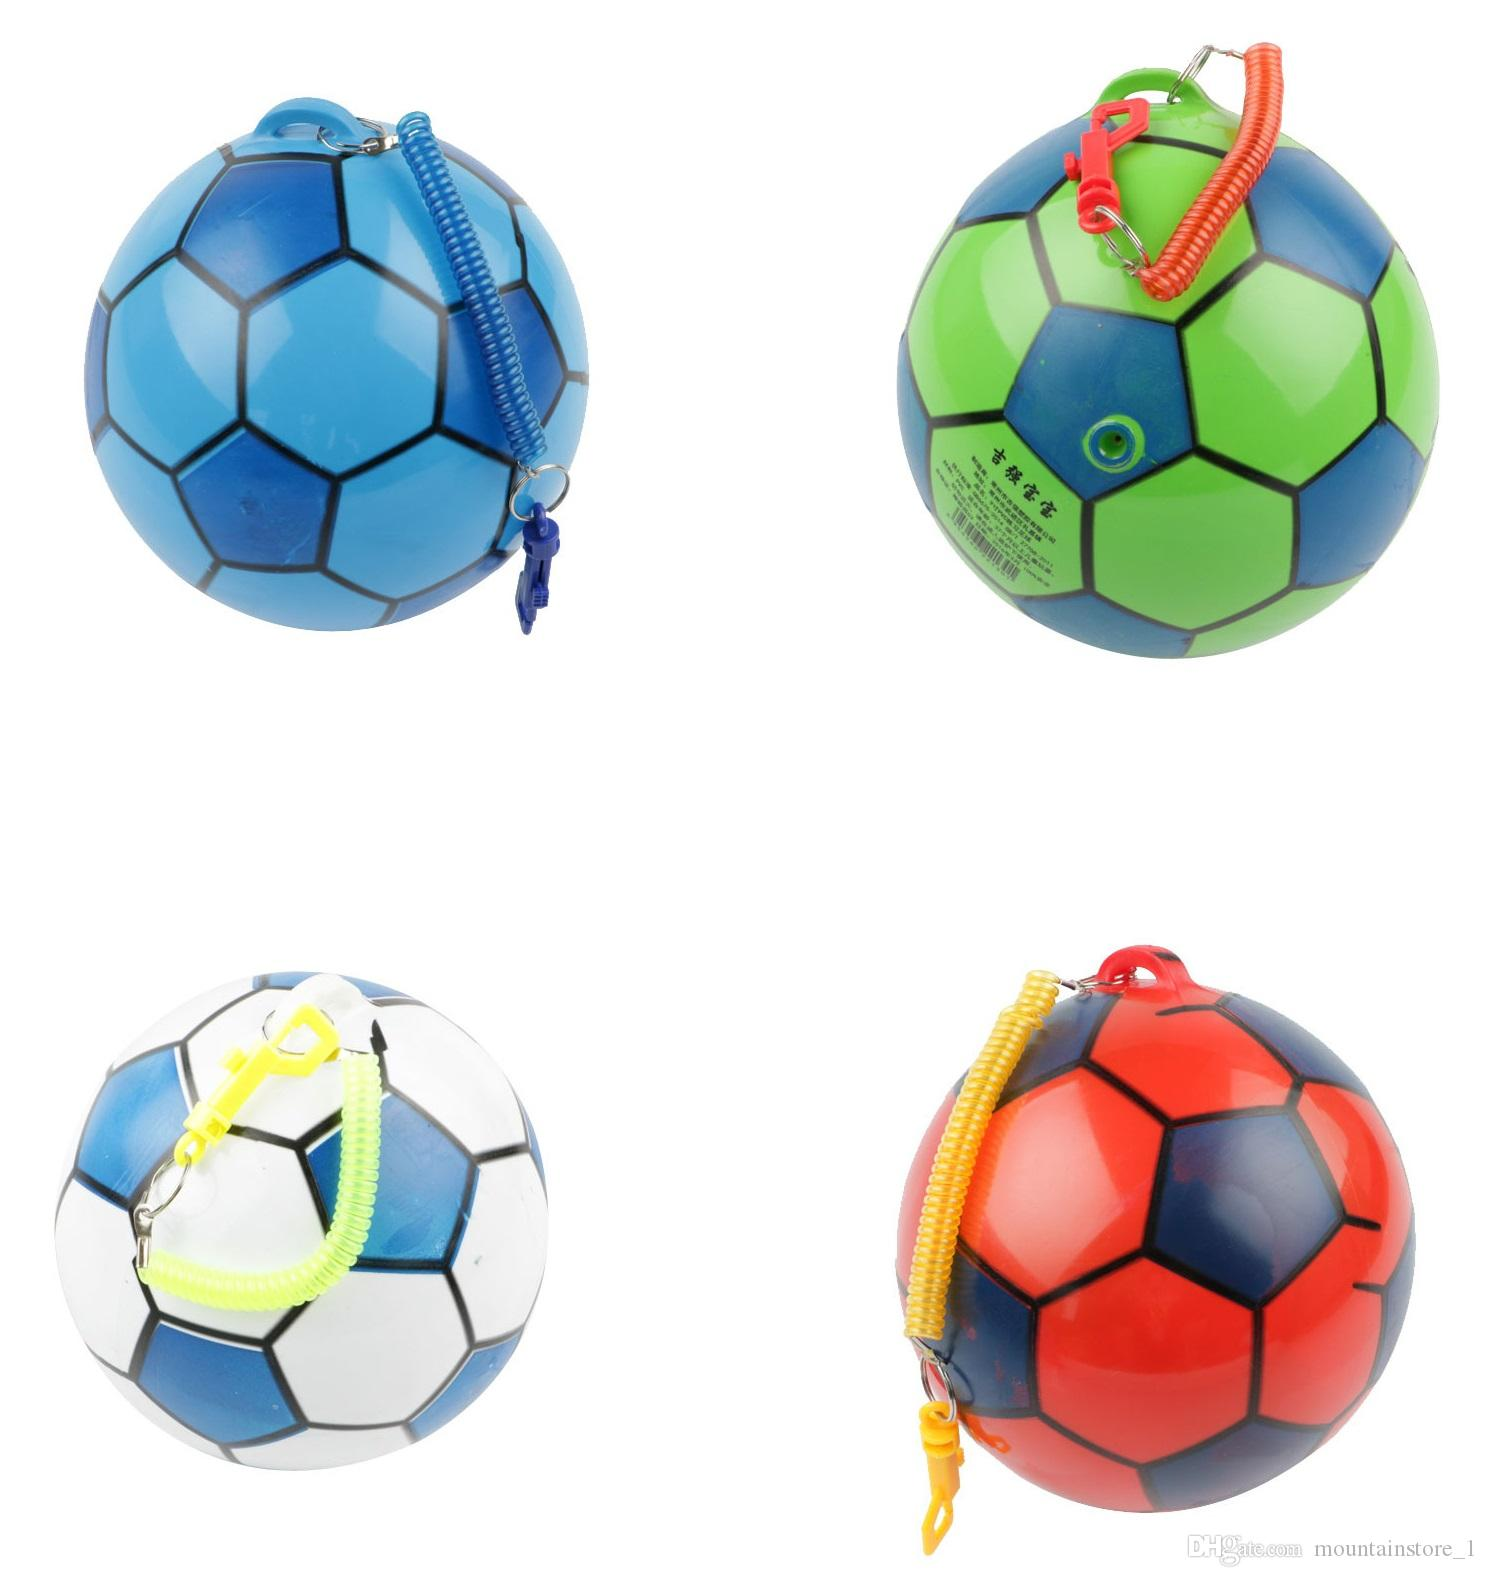 New PVC Inflatable Training Soccer with Chain Swimming Pool Football Play Water Game Balloons Beach Party Sport Kids Toys